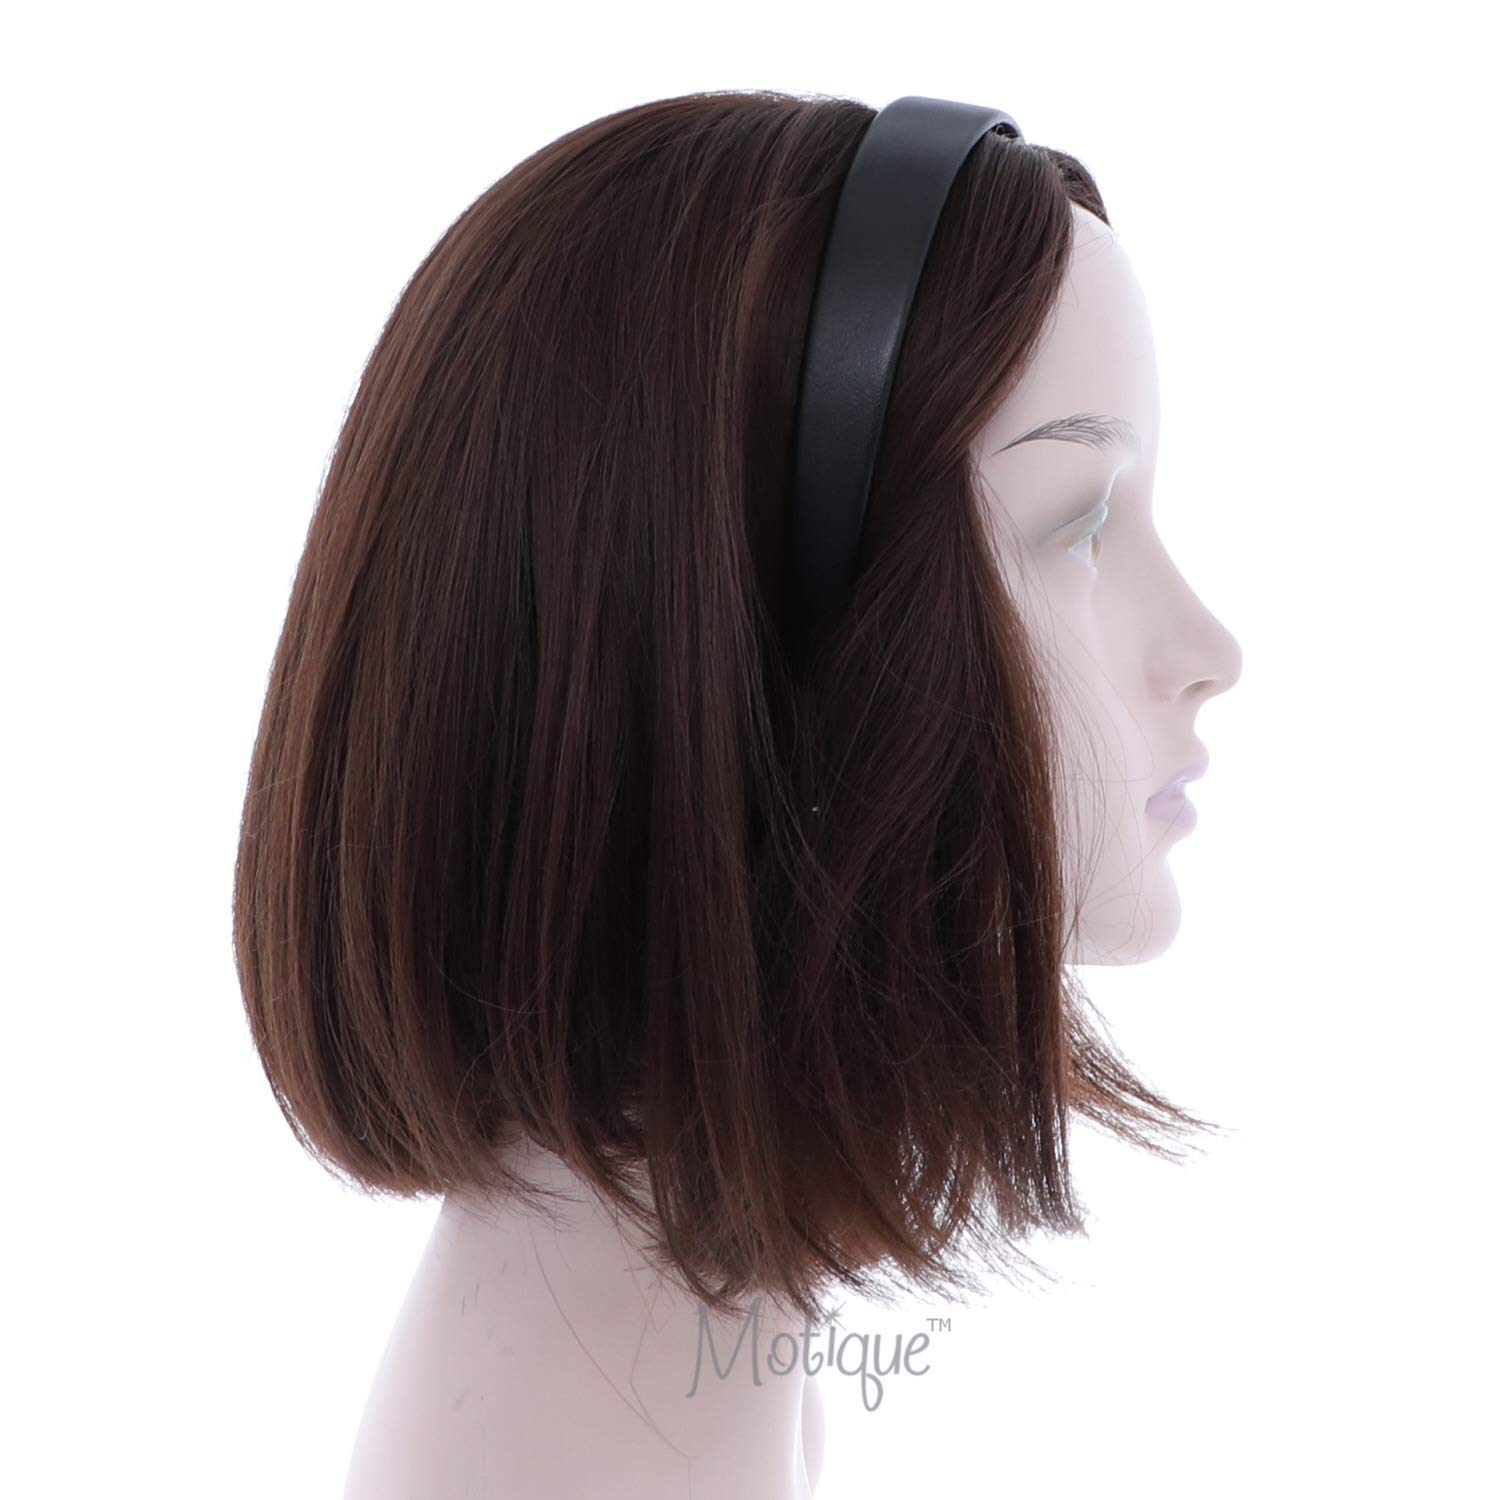 Black 1 Inch Wide Leather Like Headband Solid Hair band for Women and Girls